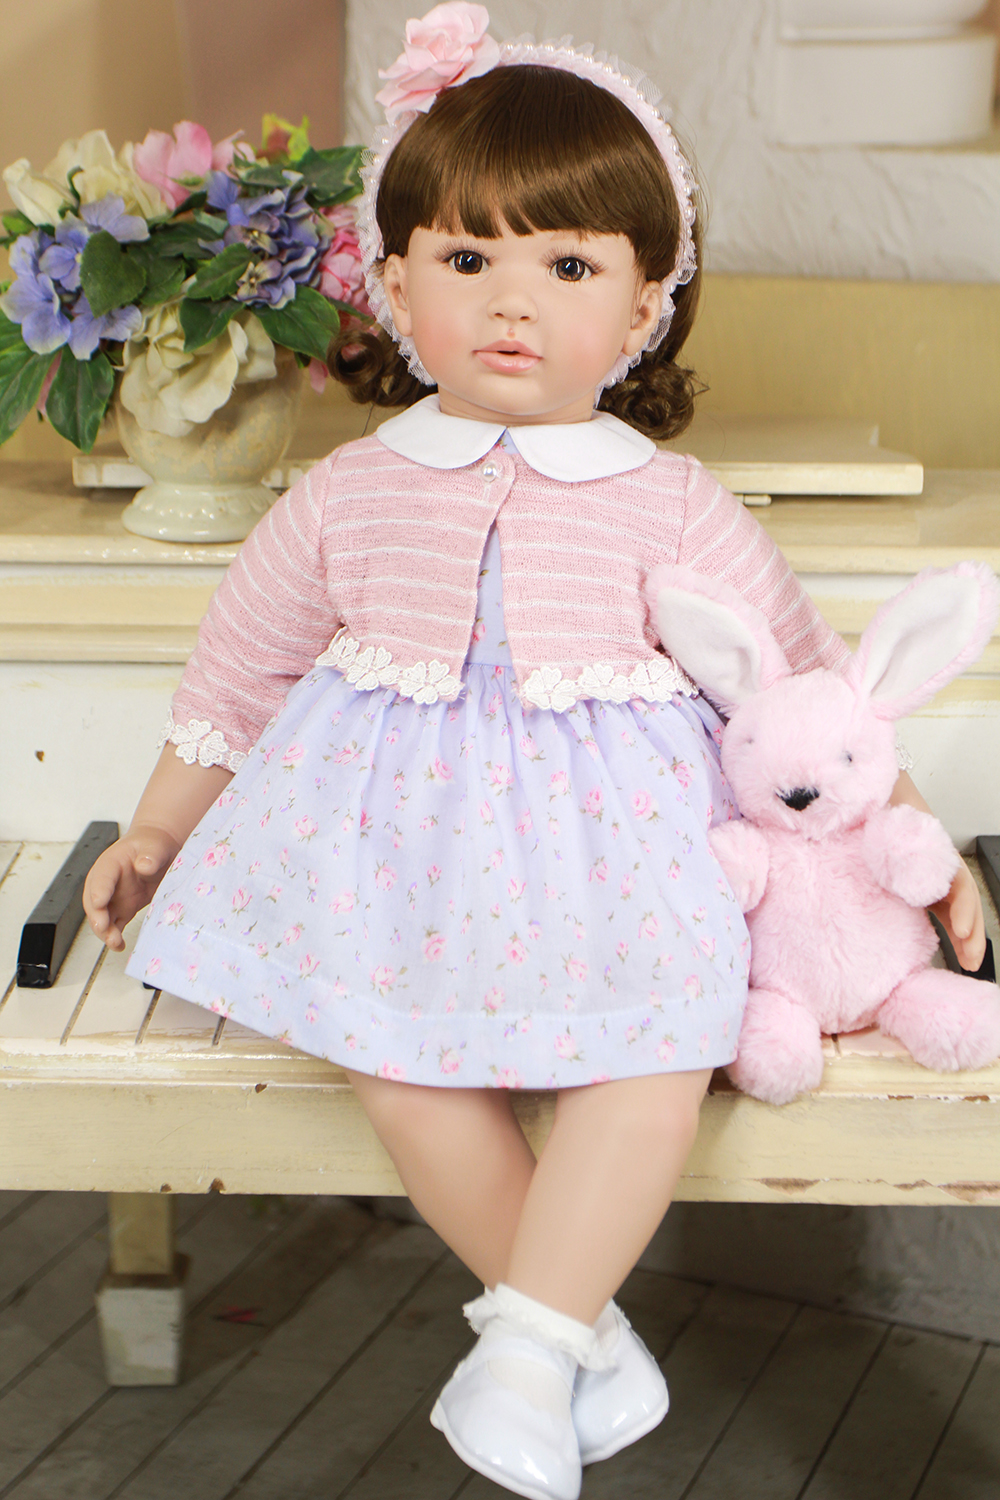 Pursue 24/60 cm On Sale Cute Baby Alive Silicone Reborn Baby Dolls Toys for Girls Birthday Gift Princess Toddler Girl Doll Toy adorable soft cloth body silicone reborn toddler princess girl baby alive doll toys with strap denim skirts pink headband dolls